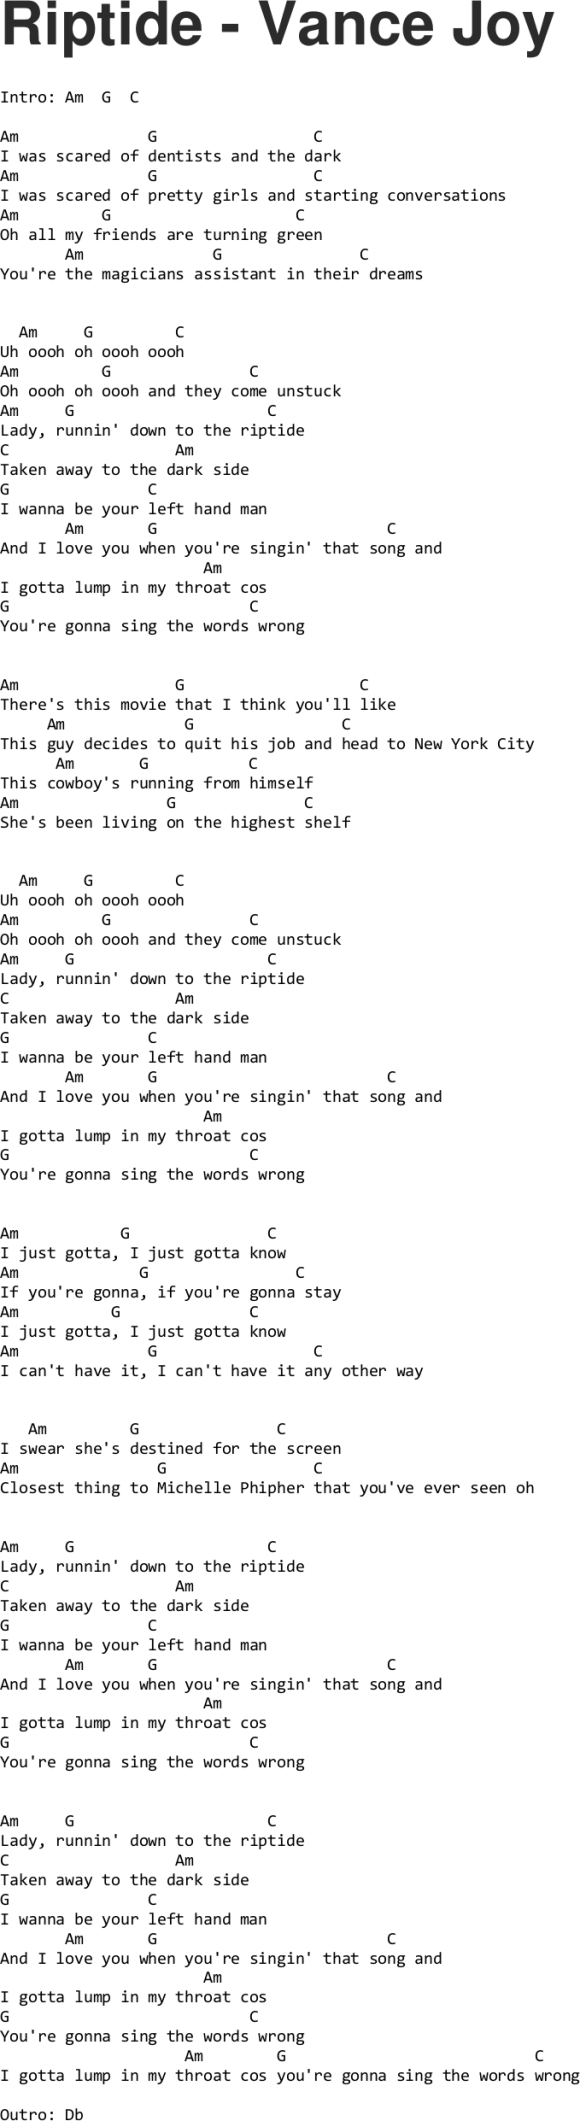 Riptide lyrics